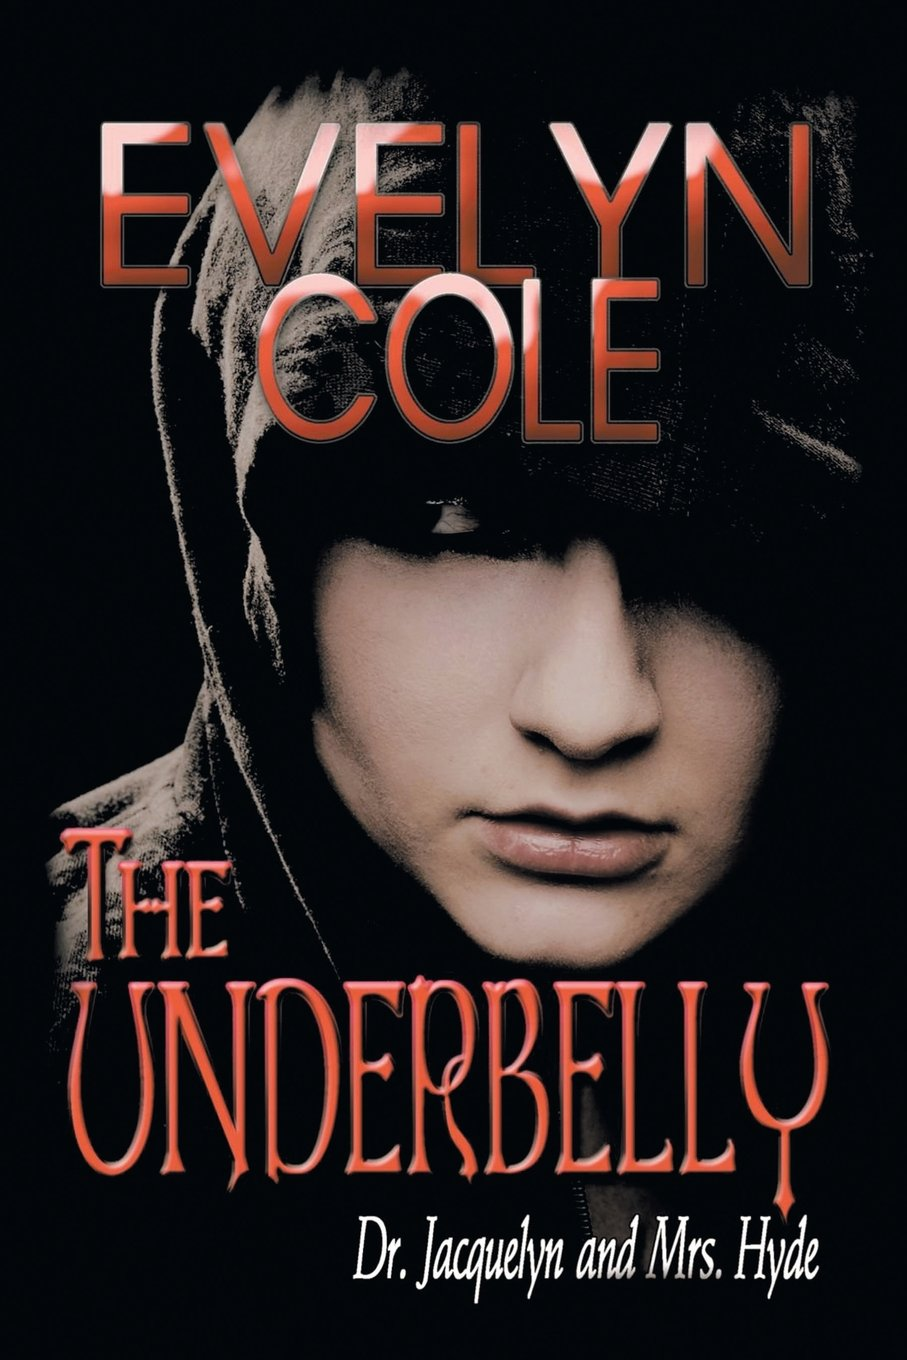 Author Evelyn Cole pens a heartfelt fiction titled: The Underbelly: Dr. Jacquelyn and Mrs. Hyde